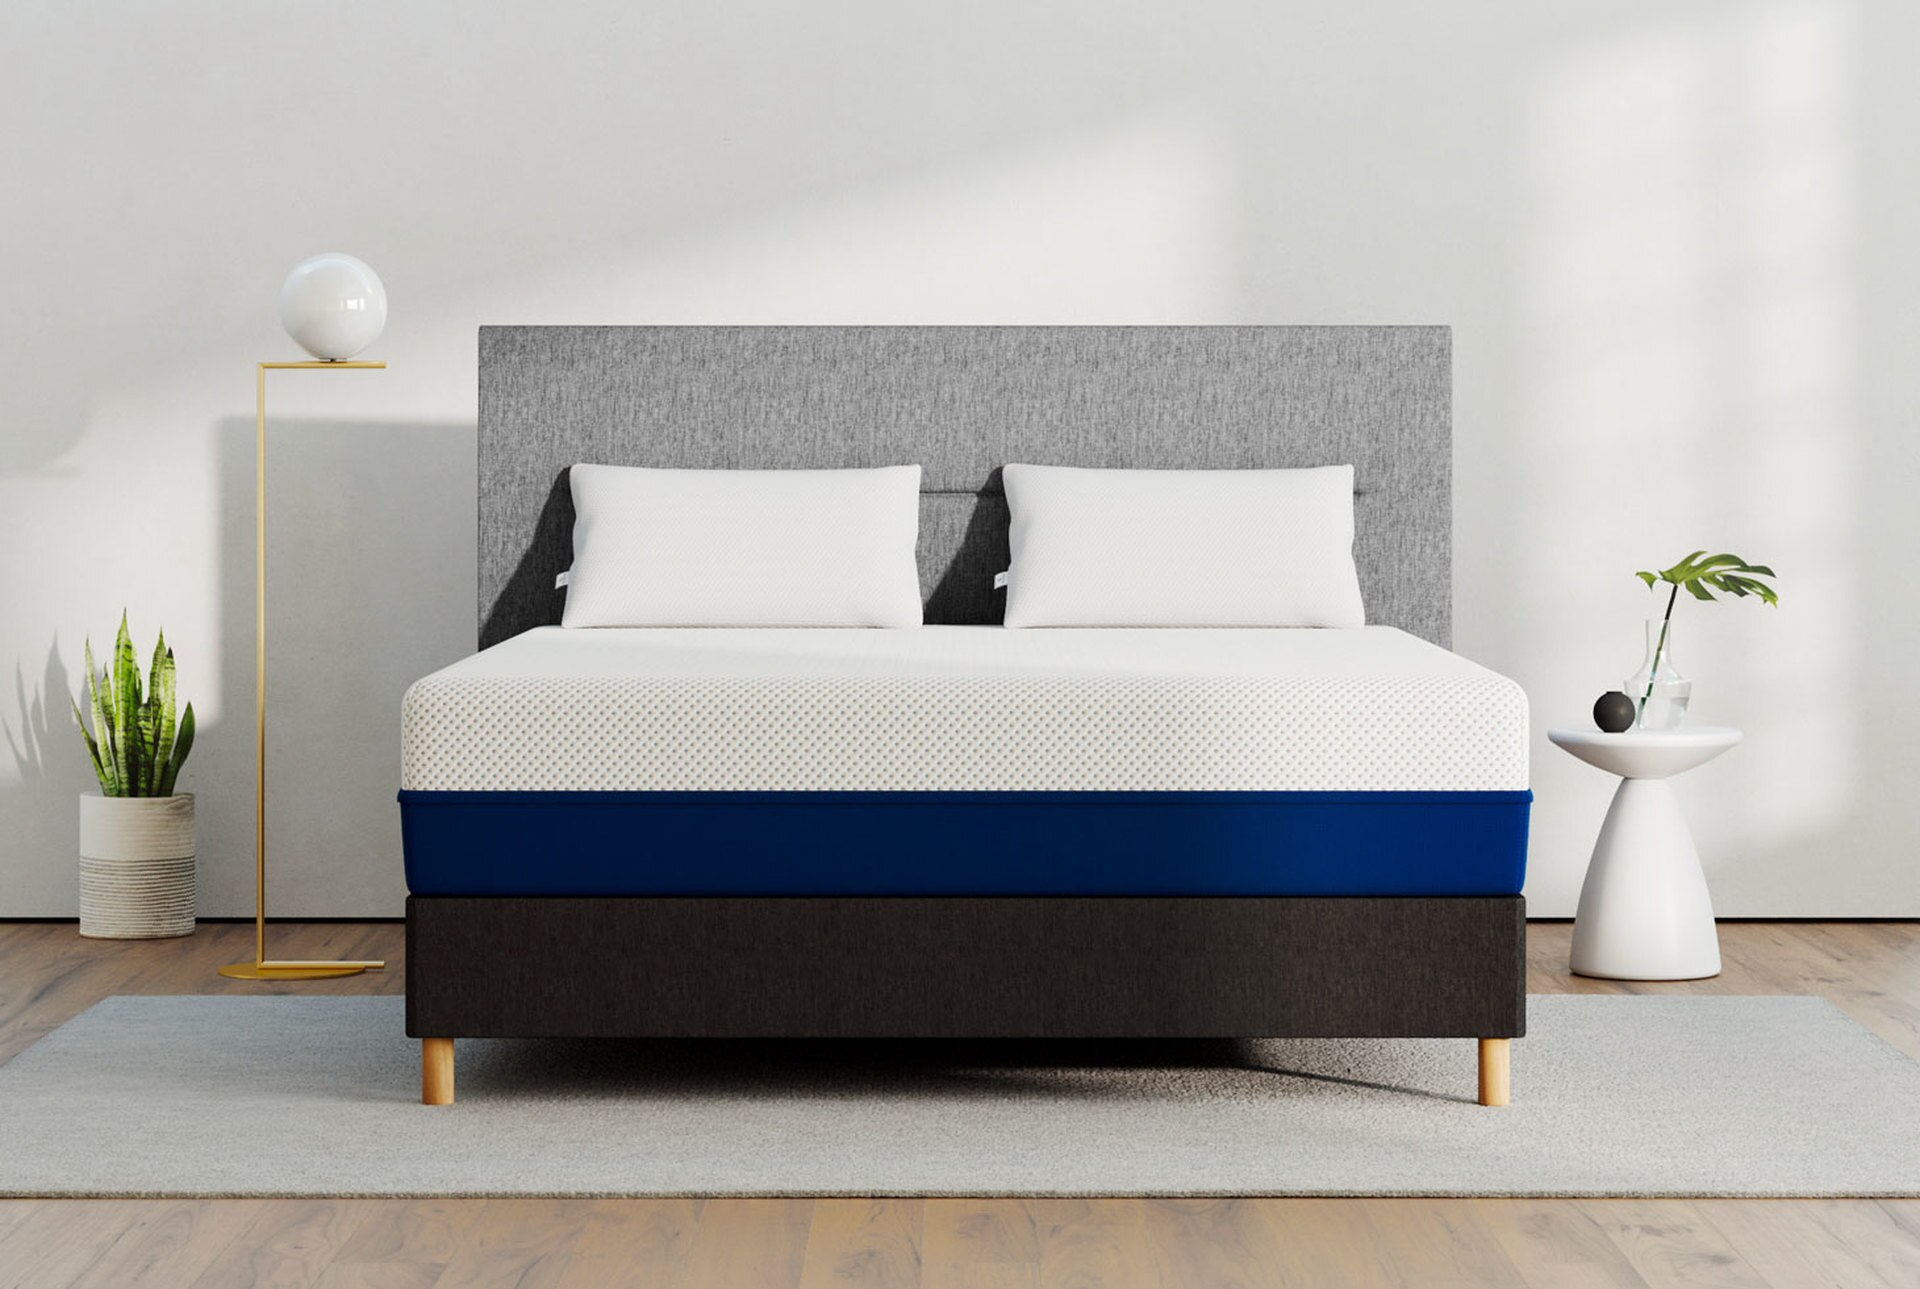 Best Queen Size Mattress 2021 Buyer S Guide Savvy Sleeper